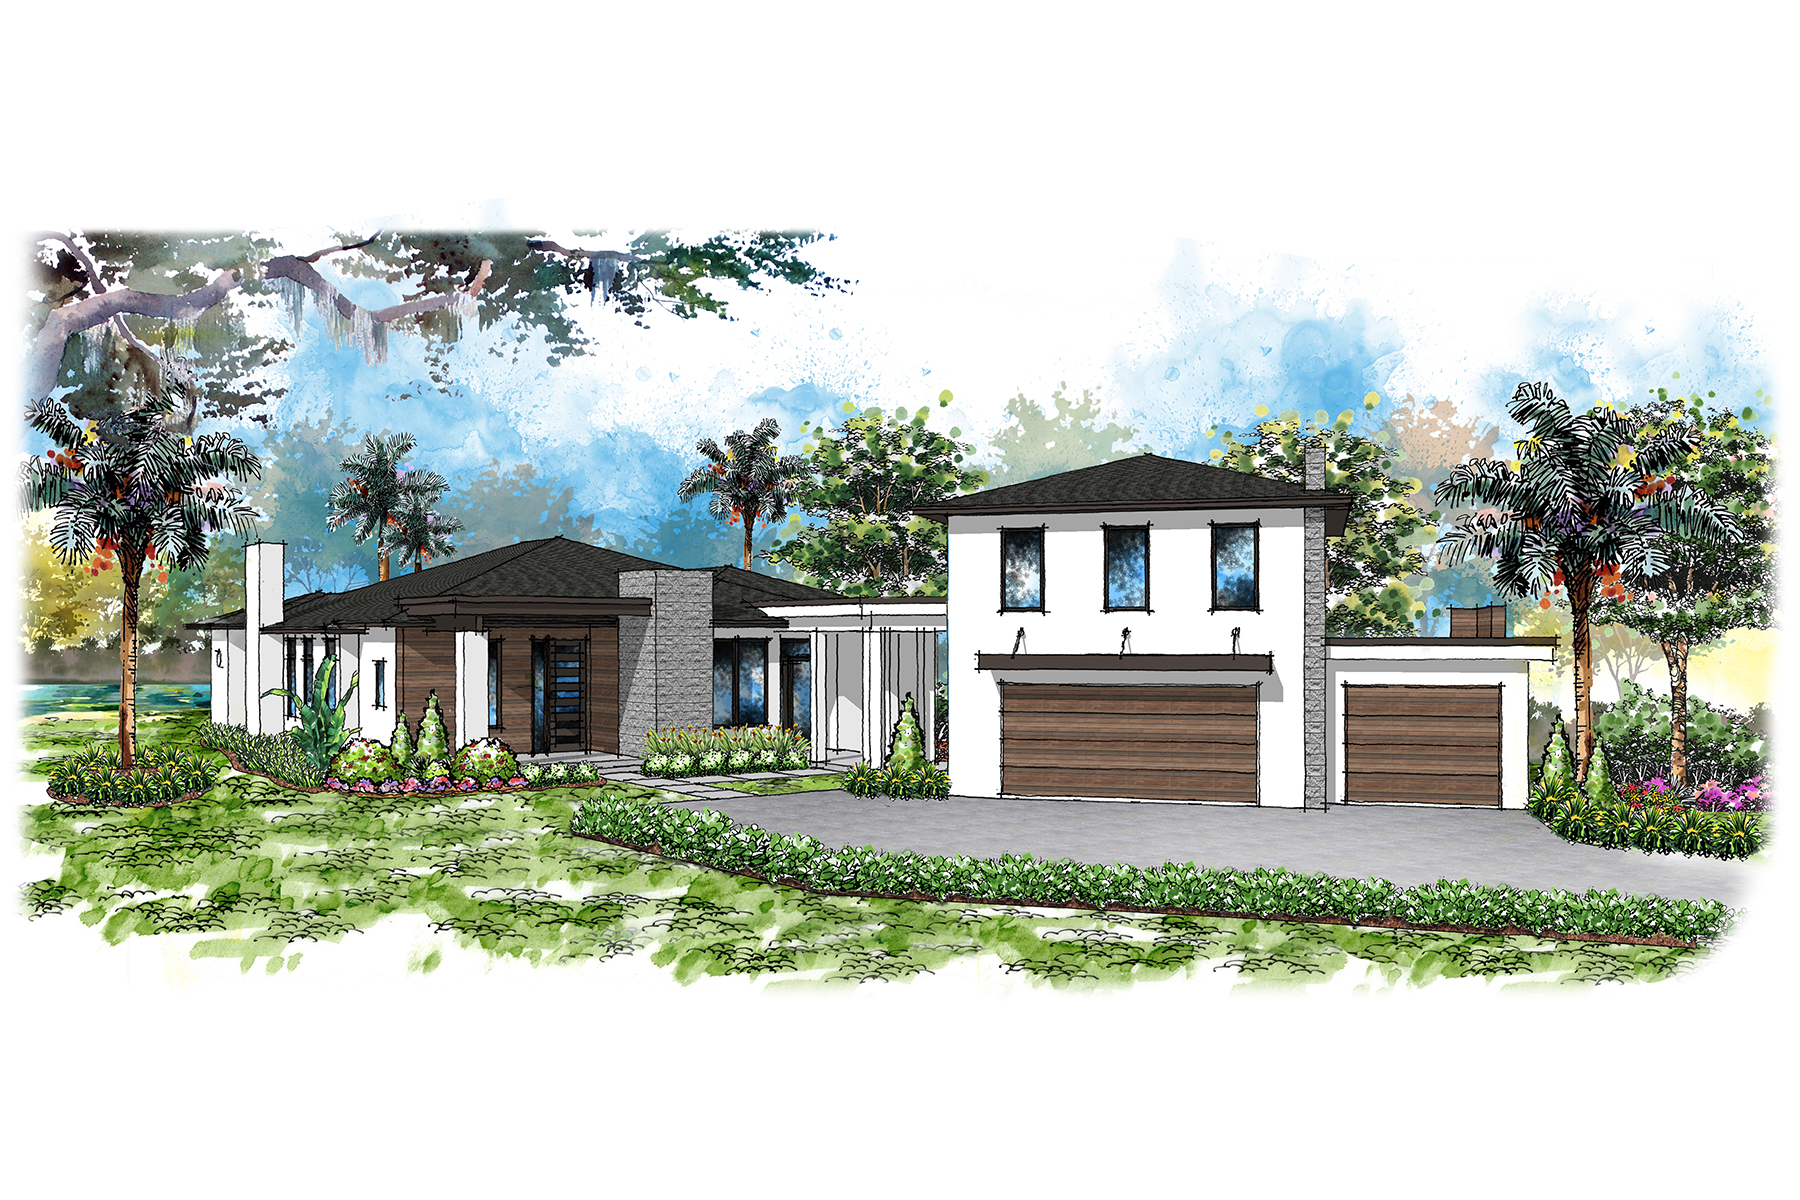 Single Family Homes for Sale at TAMPA 2531 N Habana Pl, Tampa, Florida 33618 United States